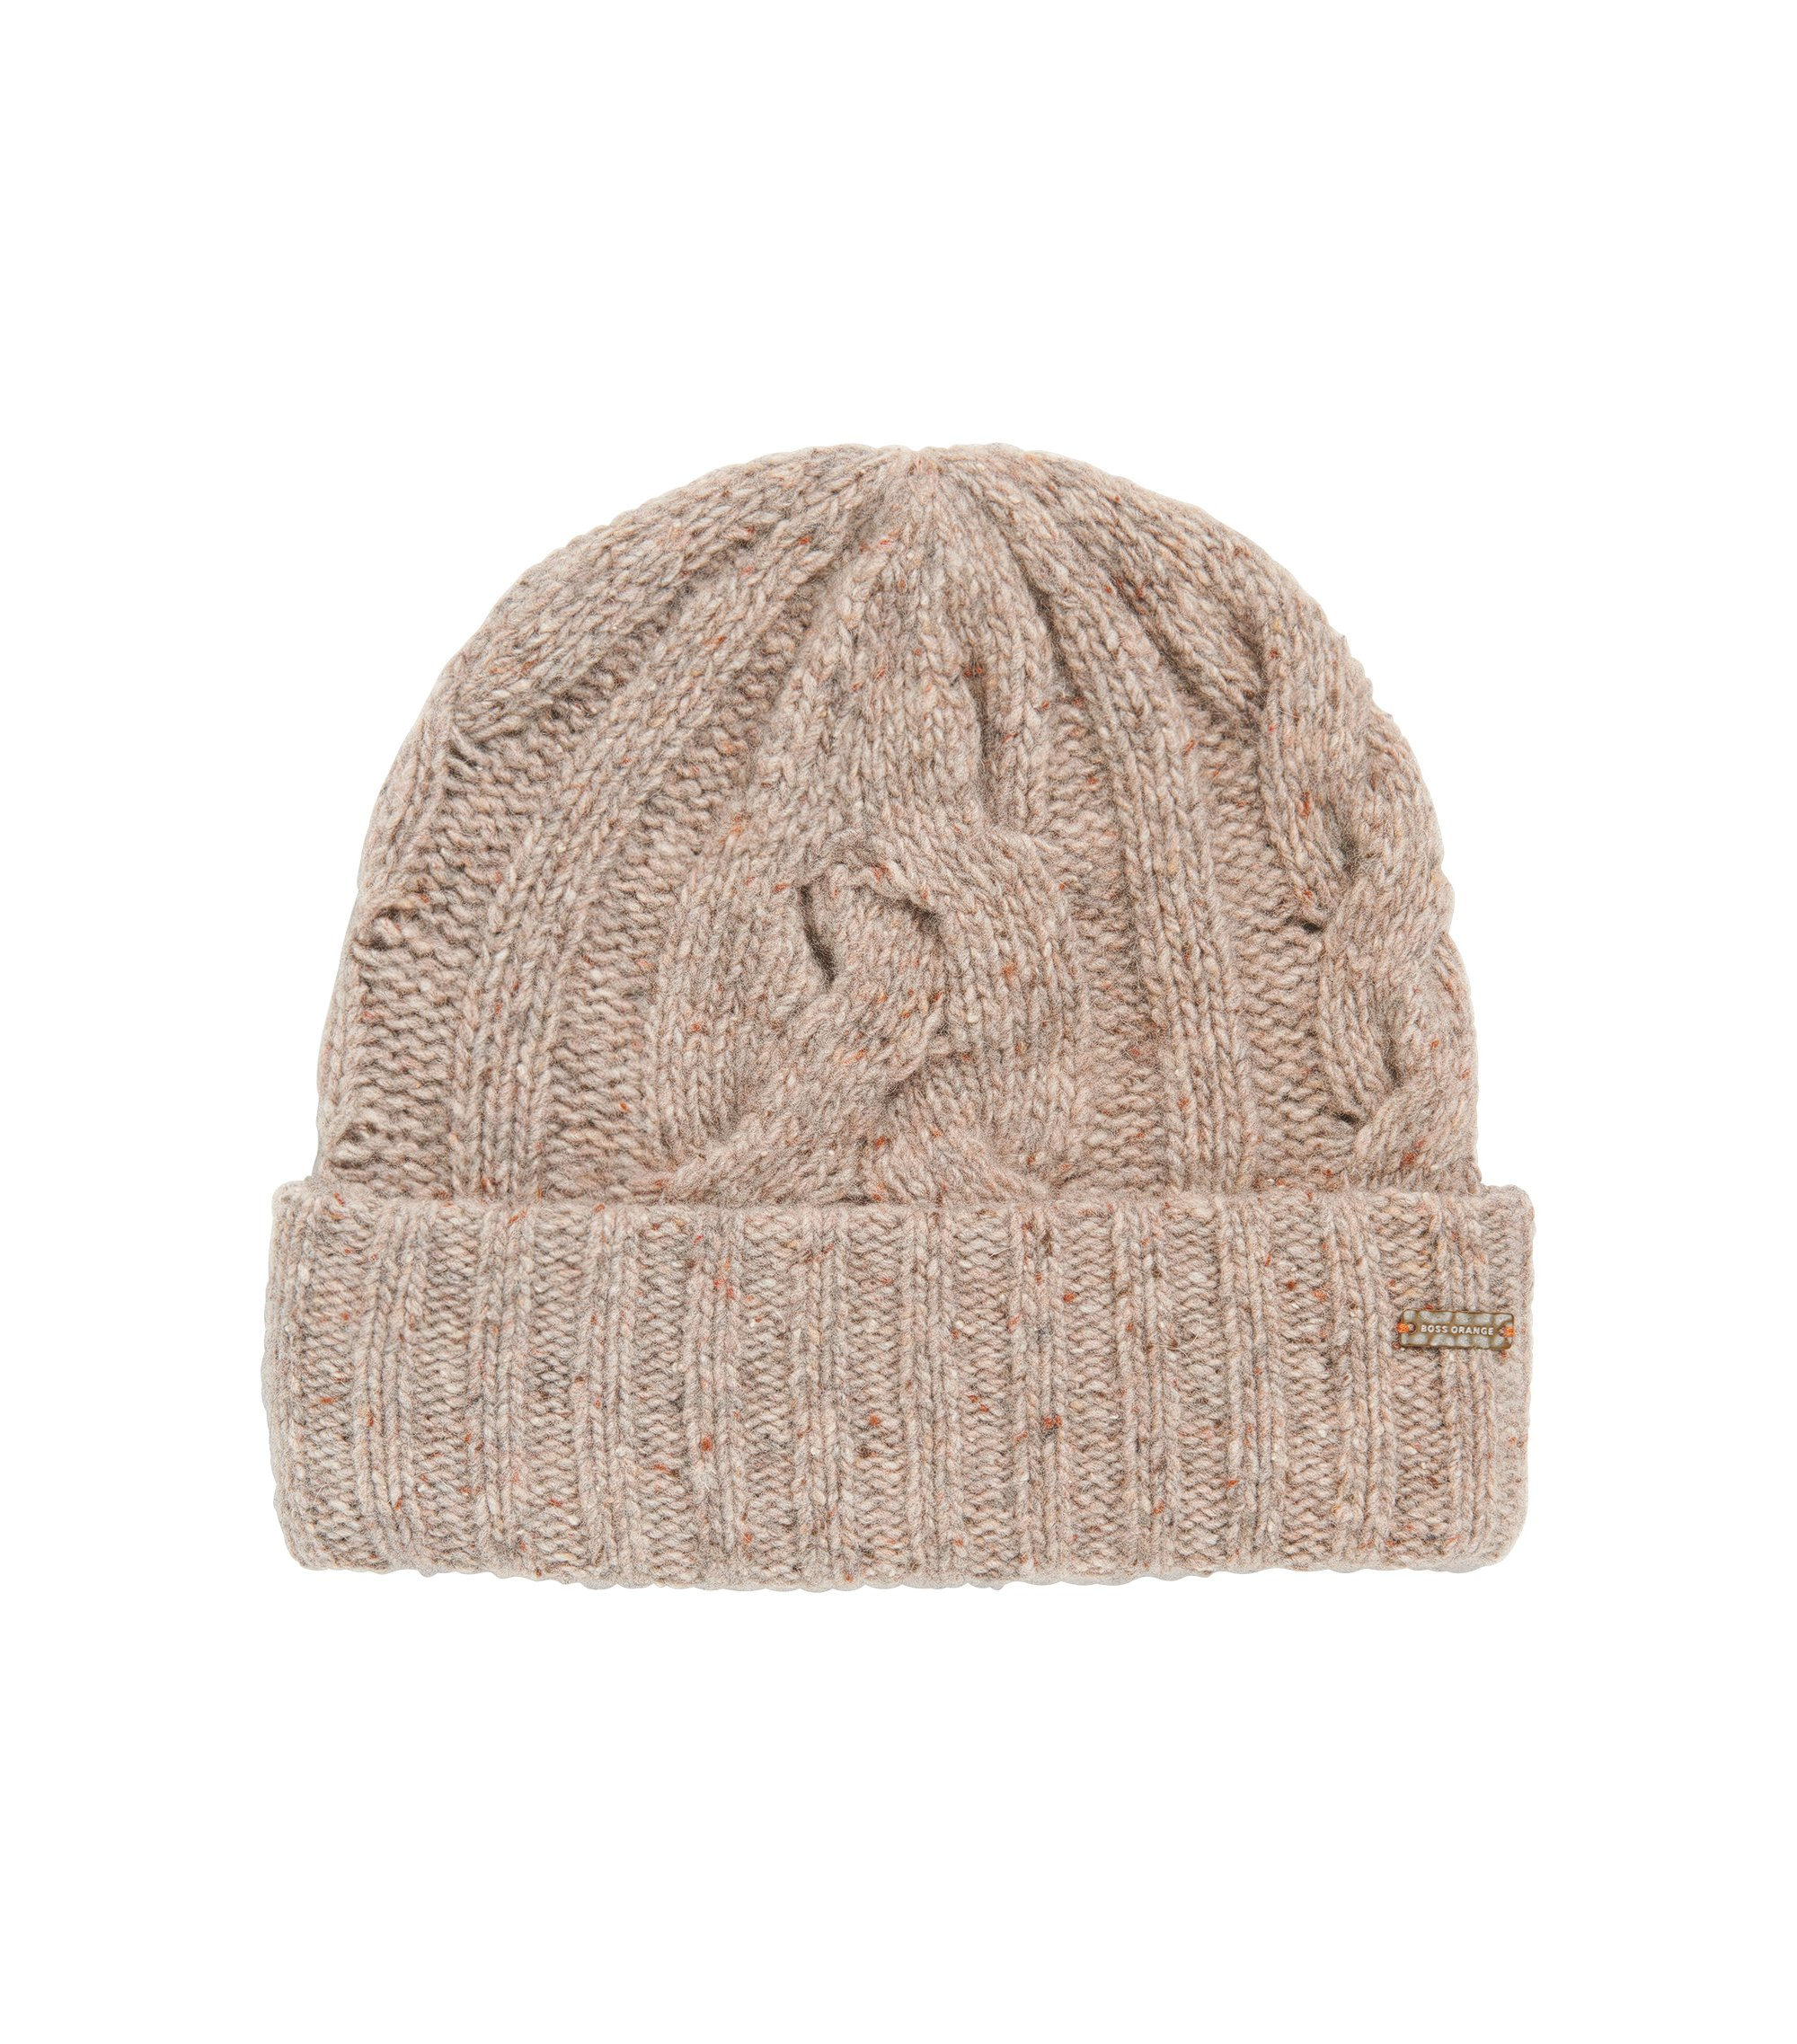 Multi-coloured cable-knit beanie hat, Natural